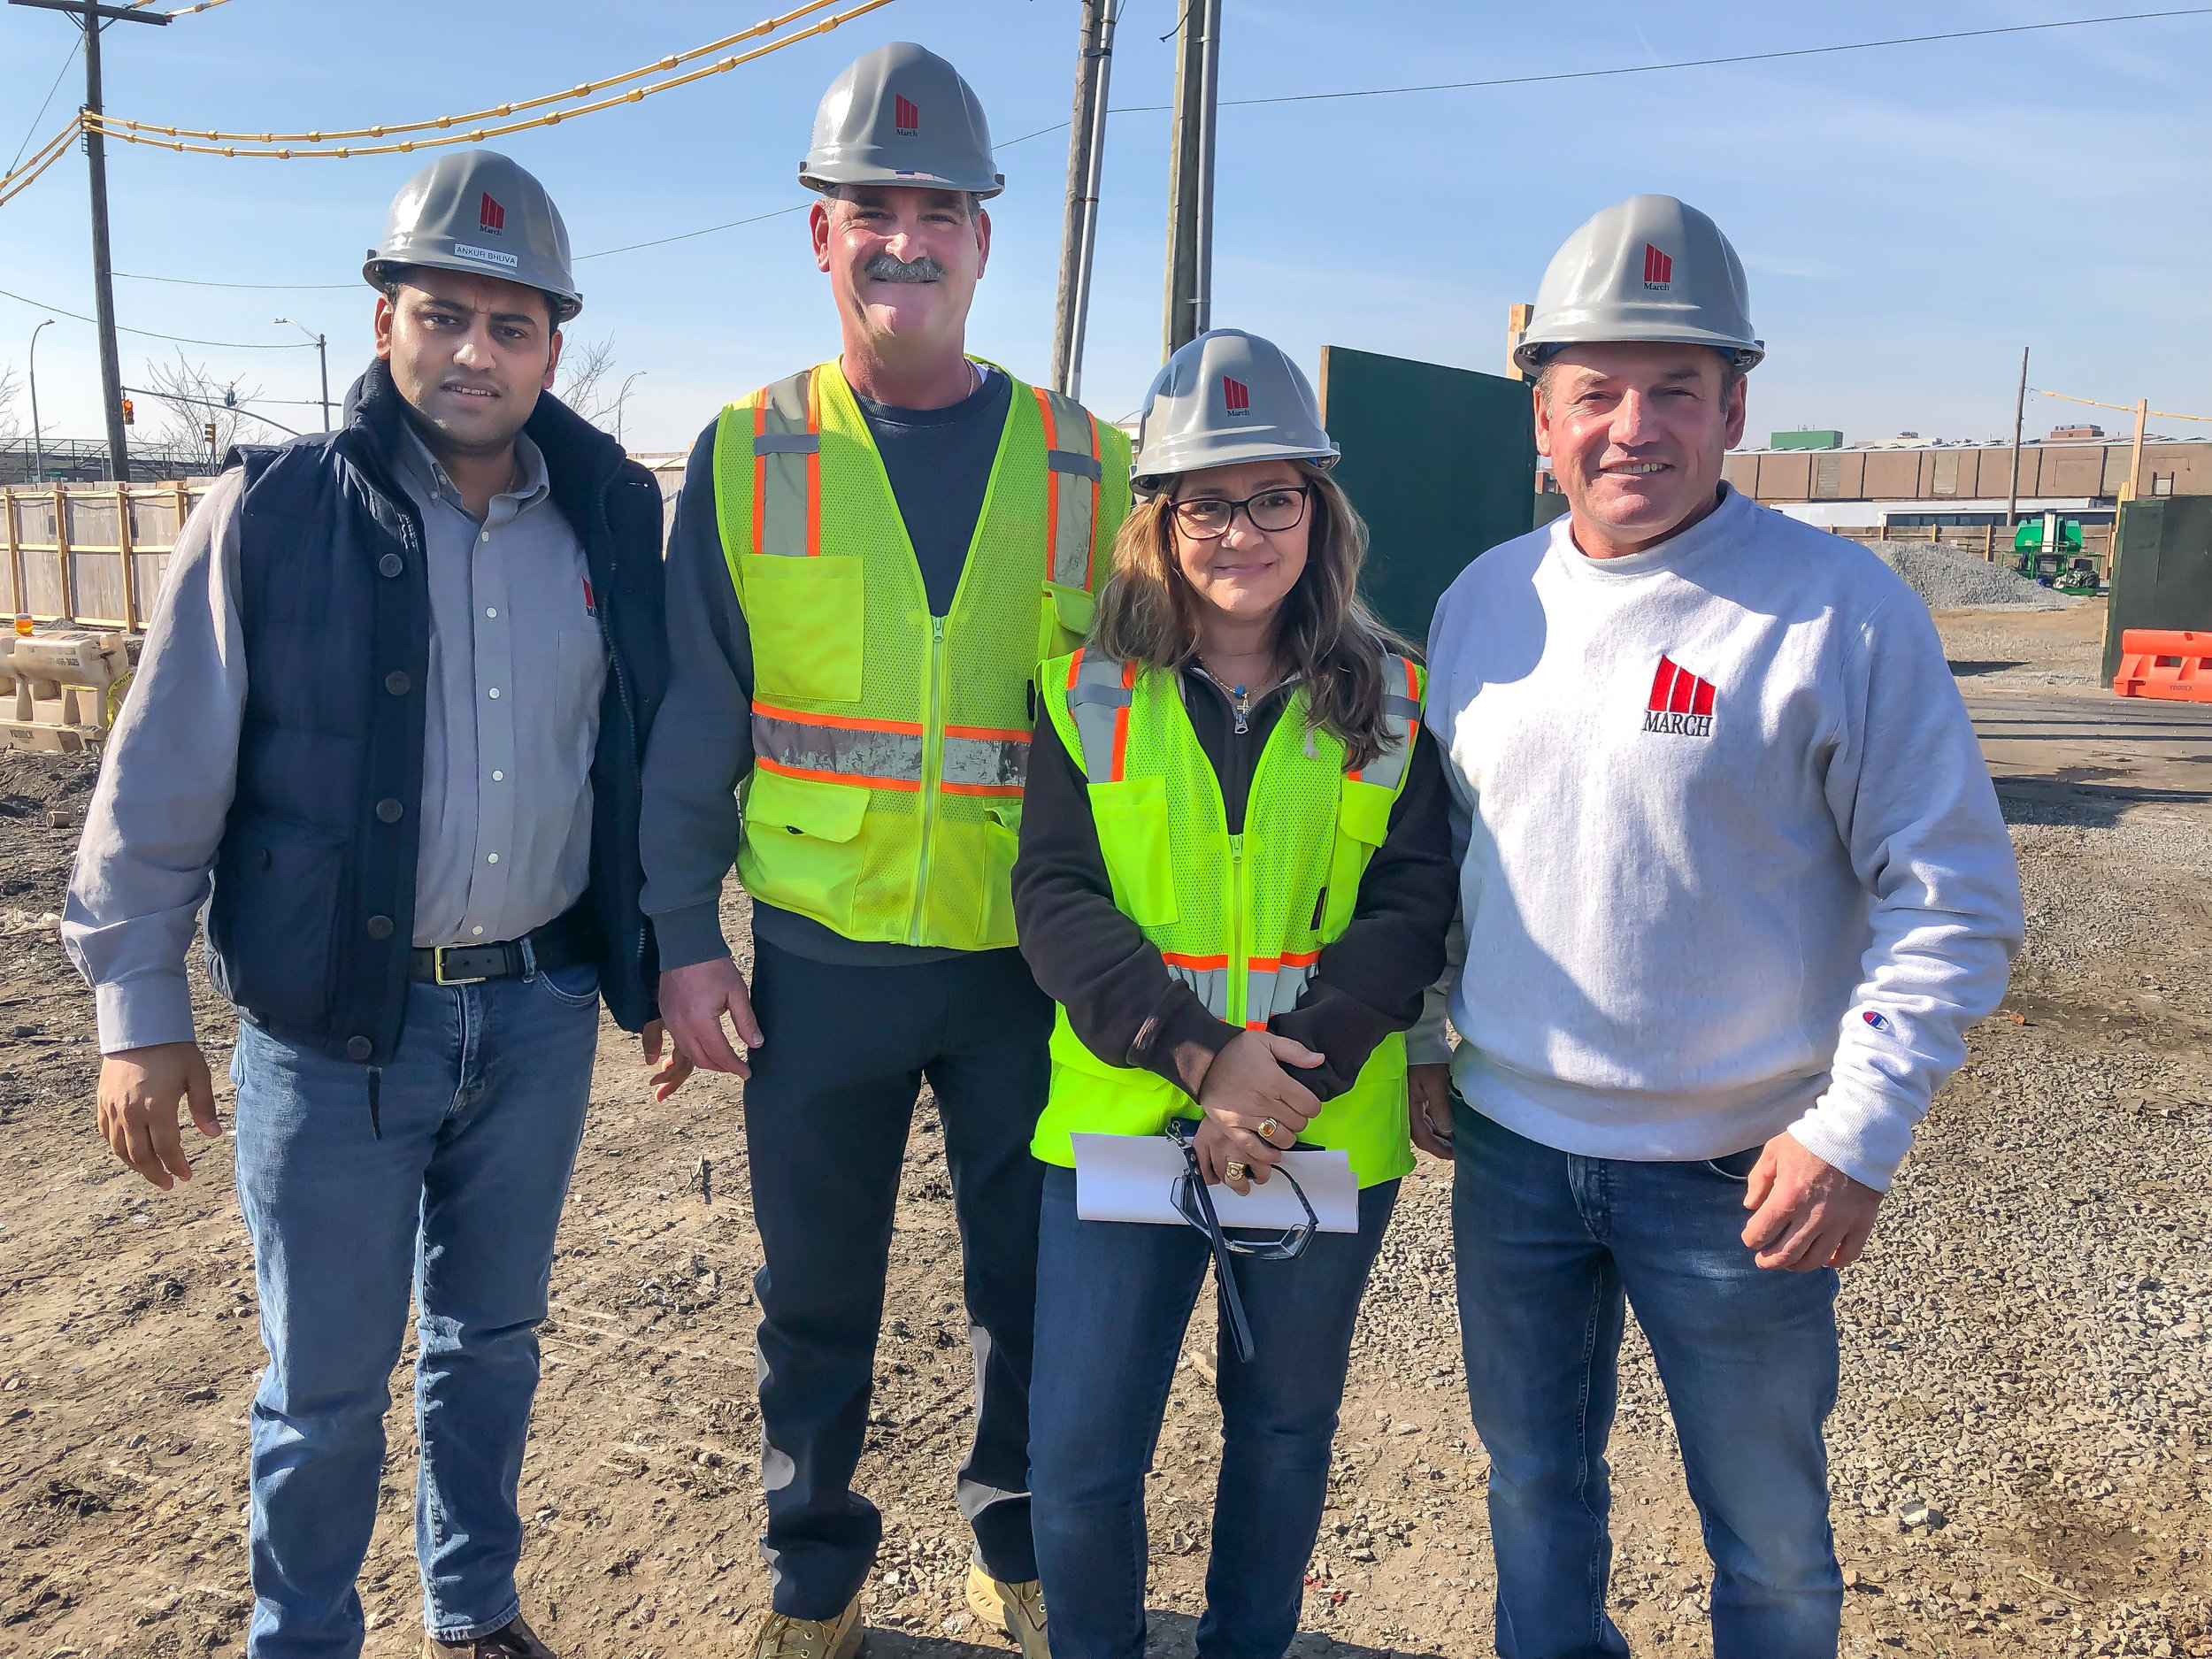 Team Photo at Brooklyn Logistics Center Safety Meeting! Ankur Bhuva, Frank Brady, Leila Stephan, Ben Turano